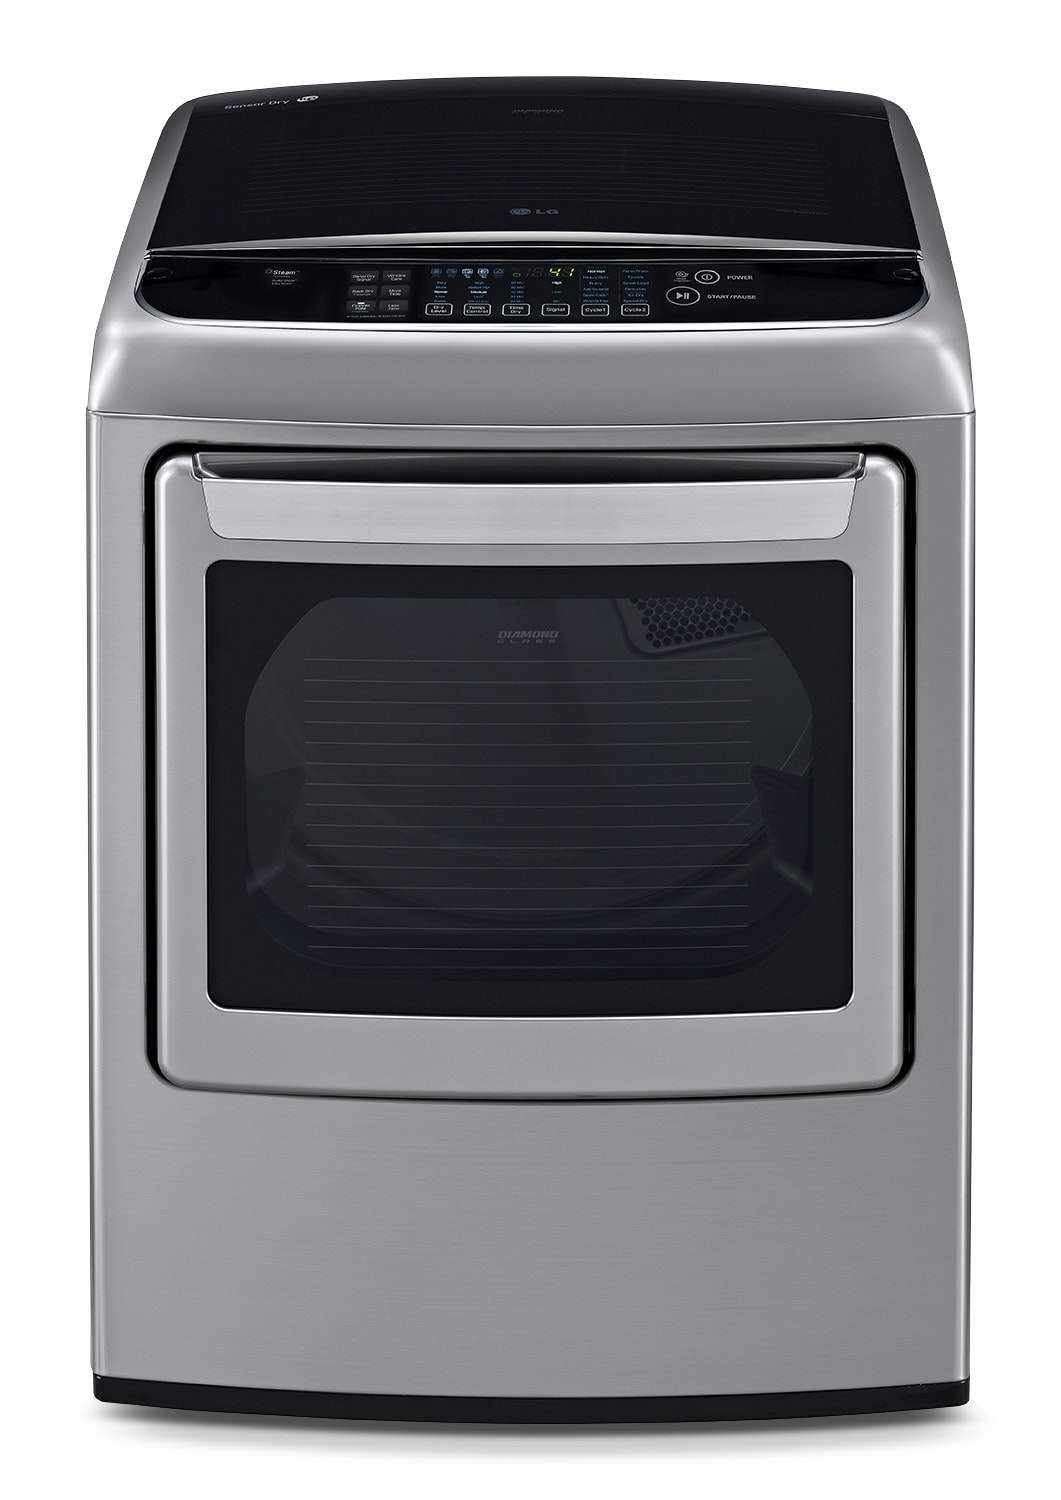 LG 7.3 Cu. Ft. Electric Steam Dryer - Graphite Steel